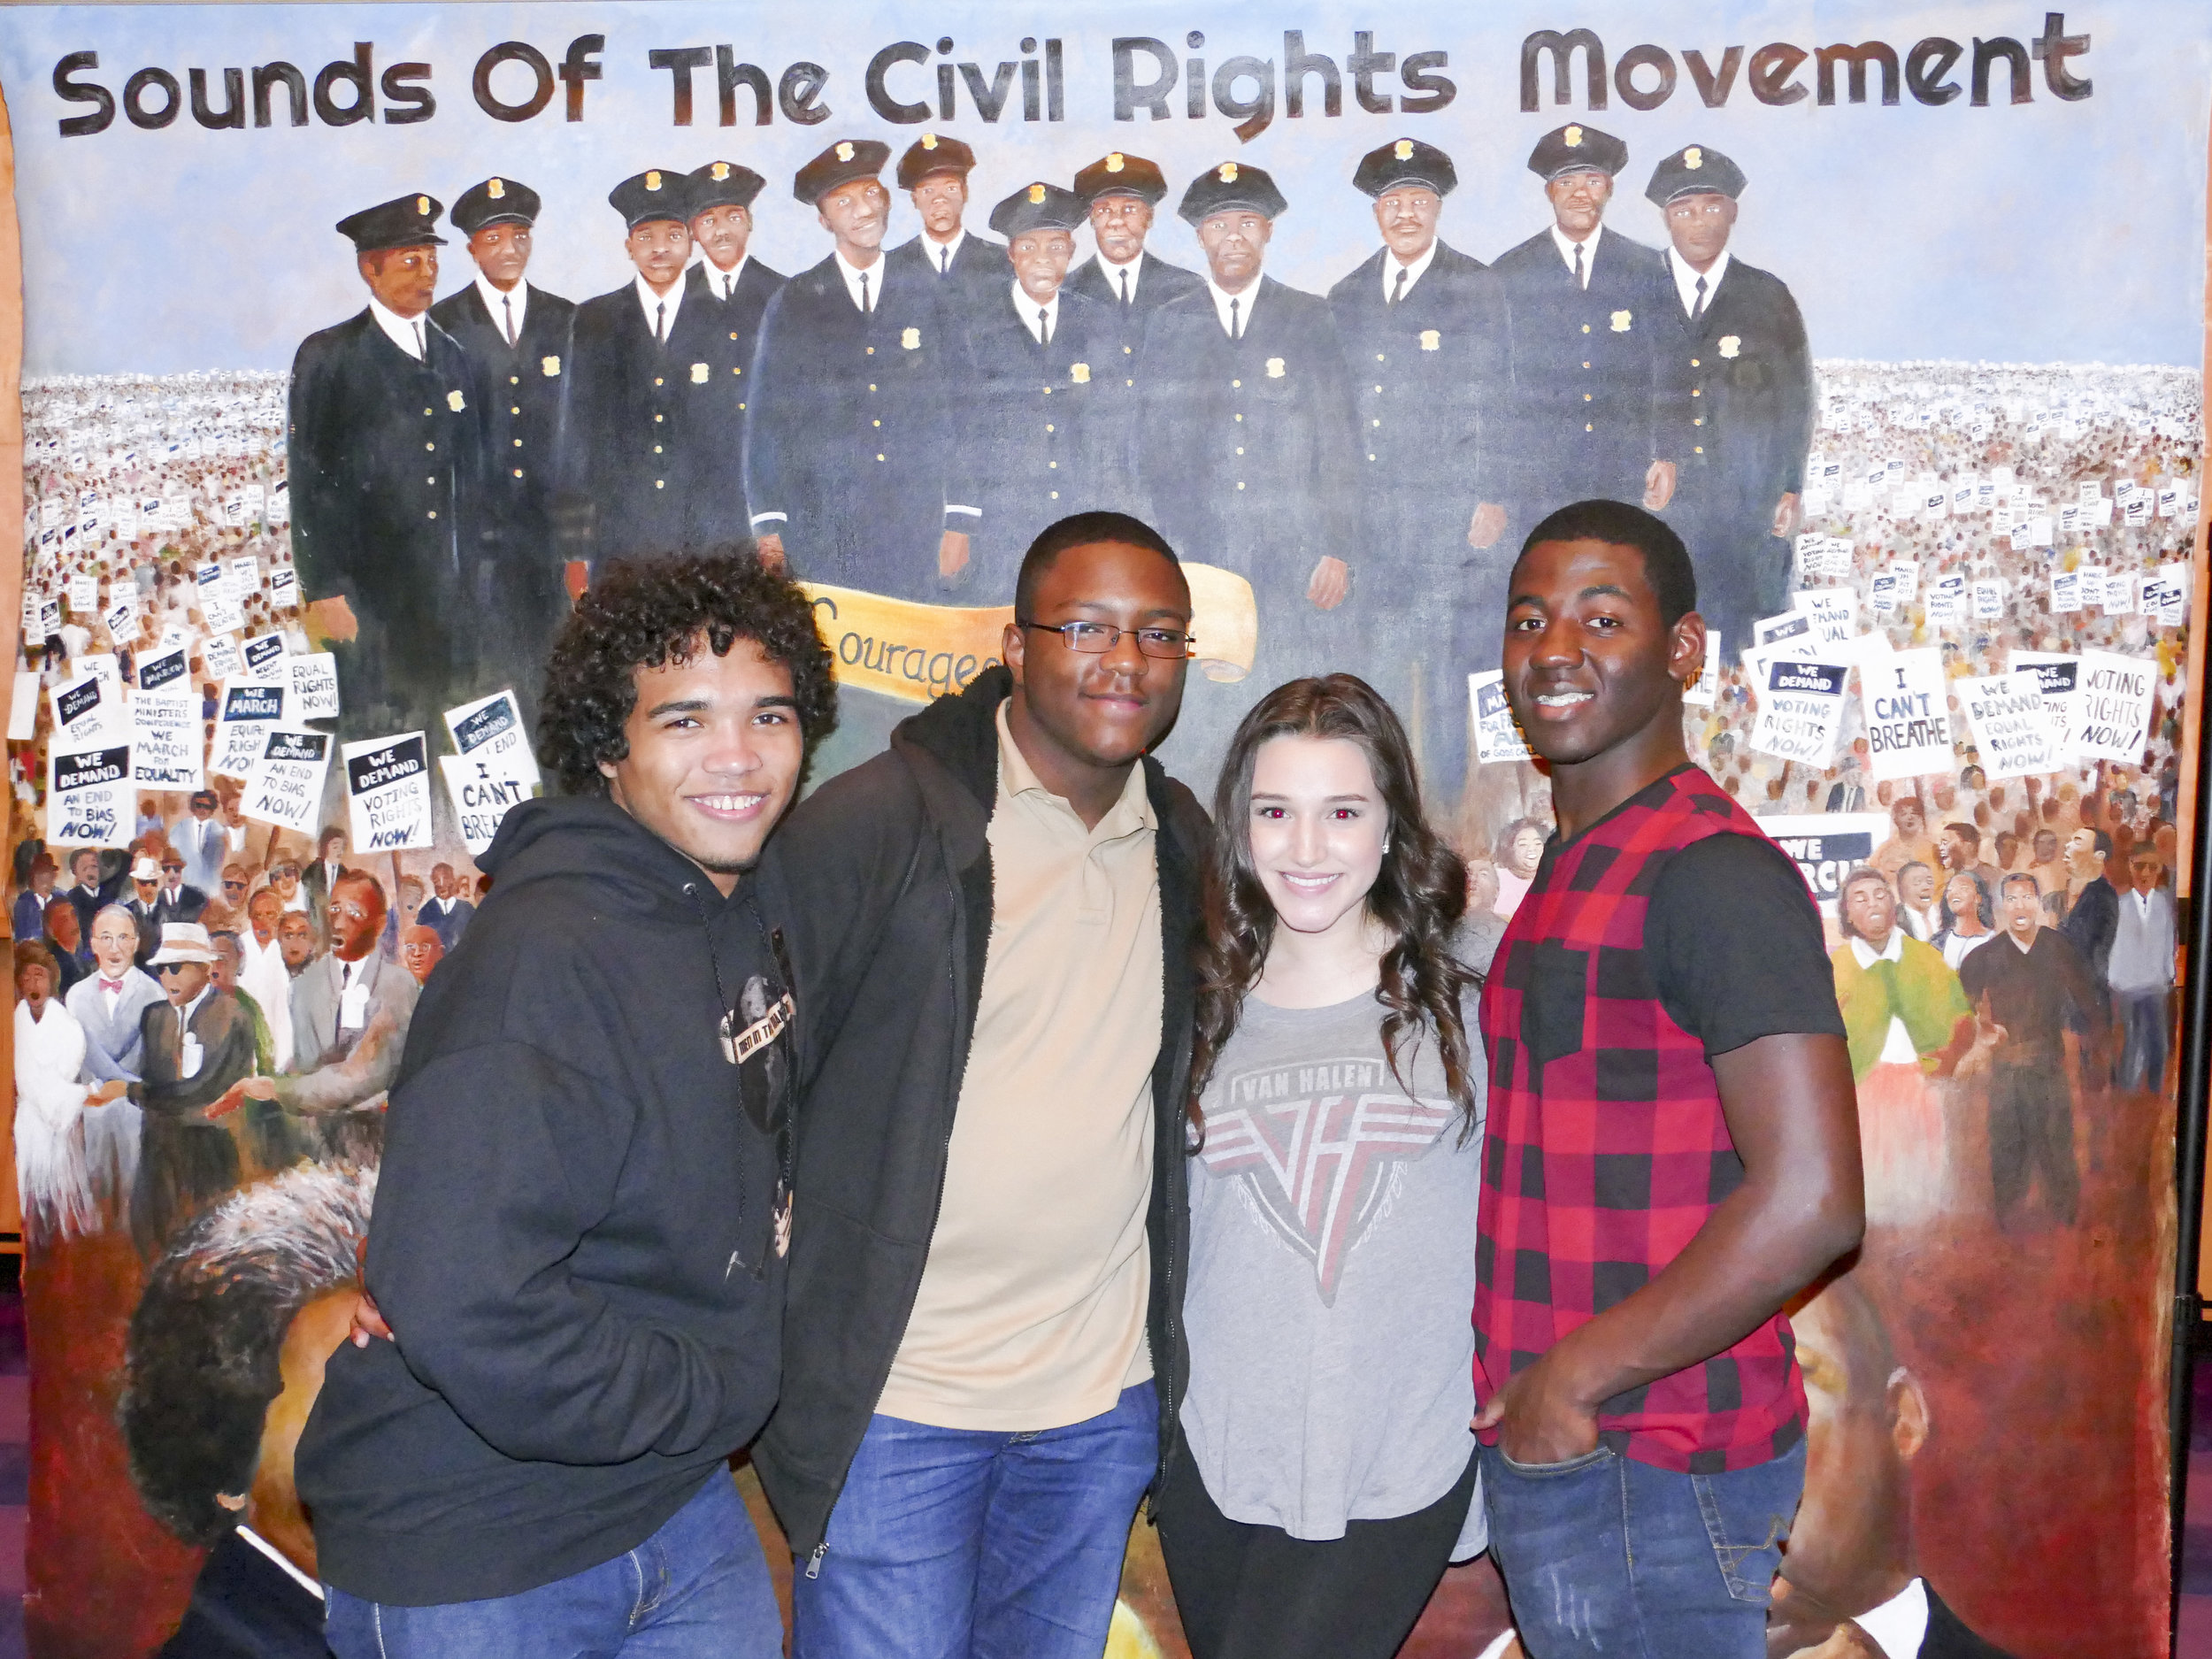 Sounds of Civil Rights POS Pasadena 2017 Boyzell pics159.jpg